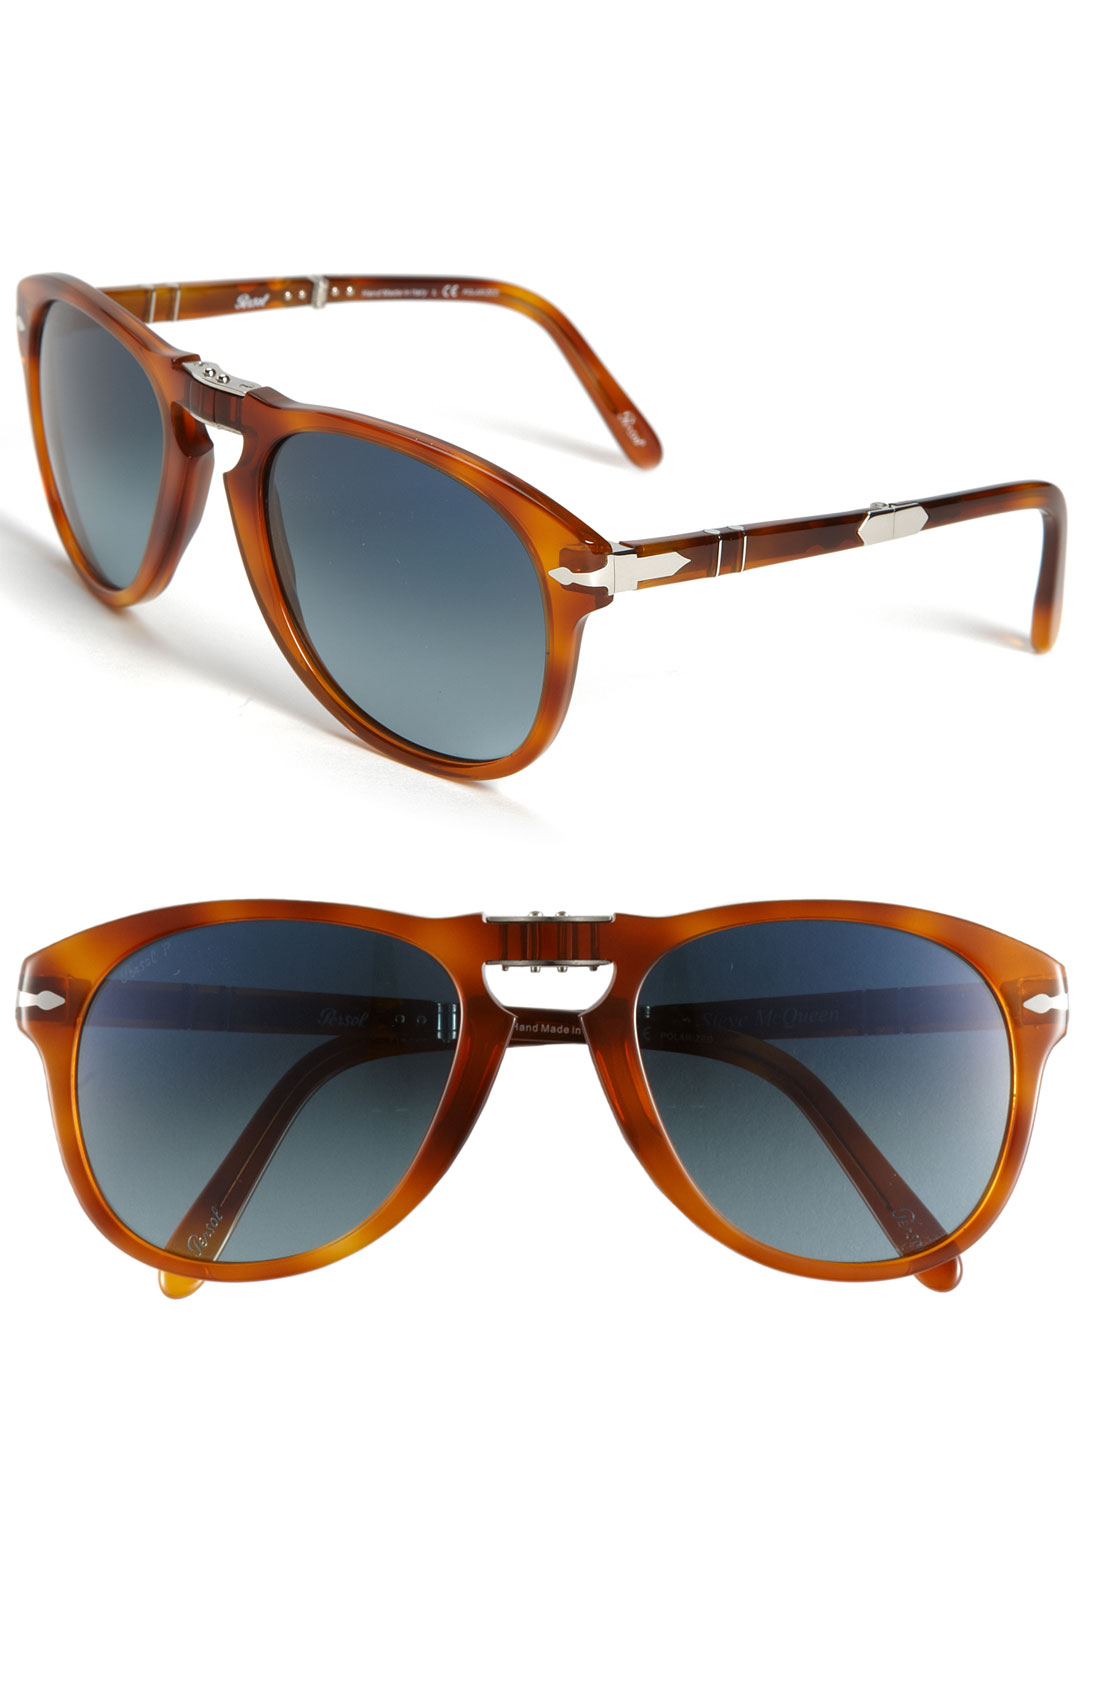 e6c1e16703b Persol Women s Folding Sunglasses